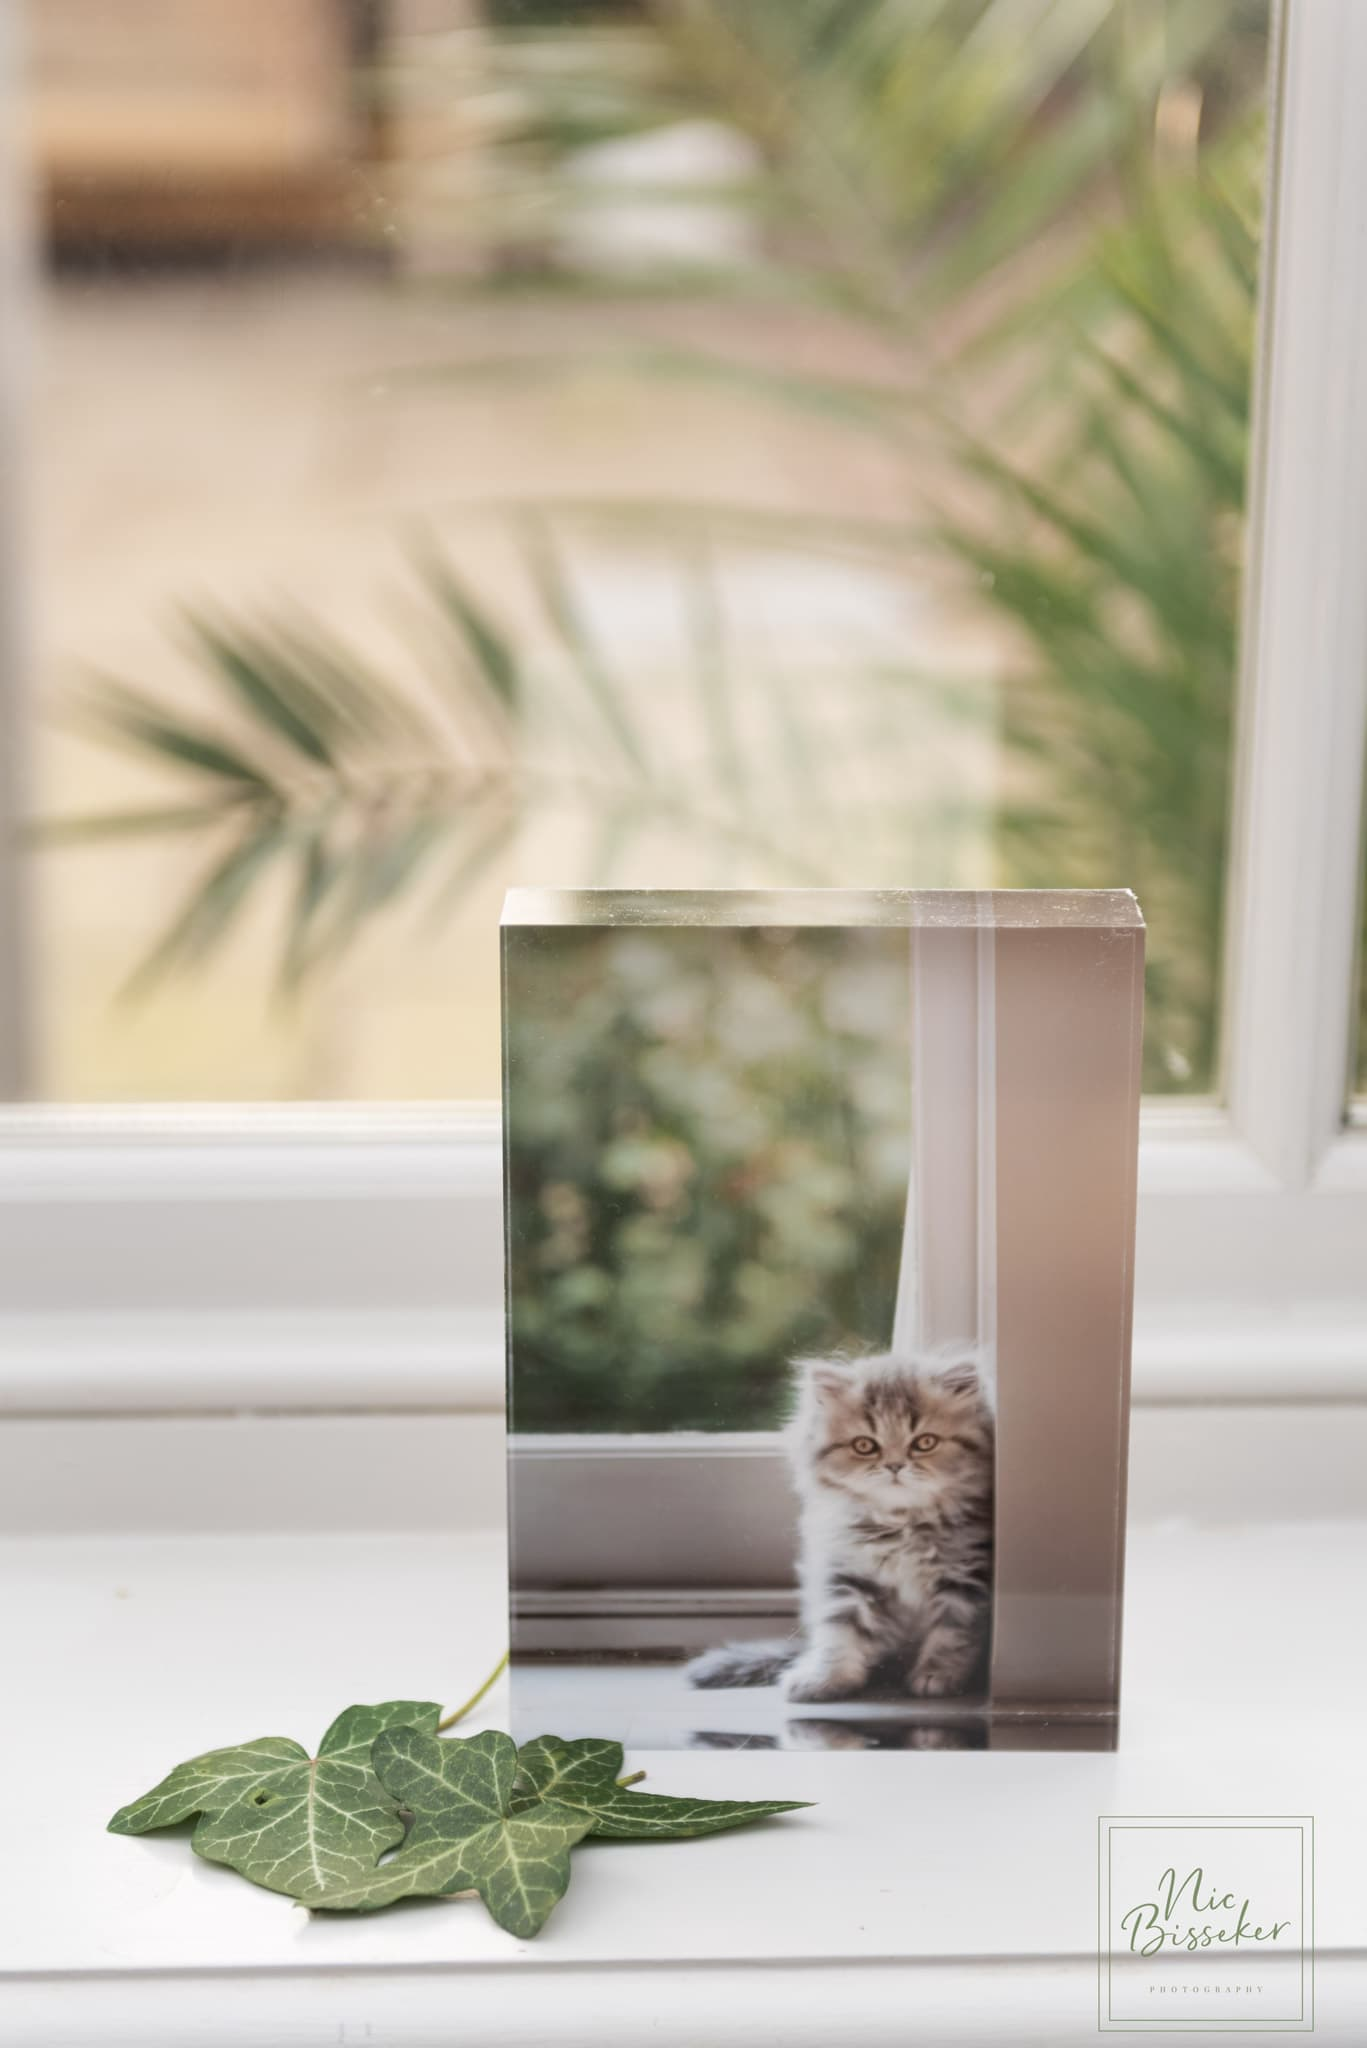 nic bisseker photography cat photographer east grinstead